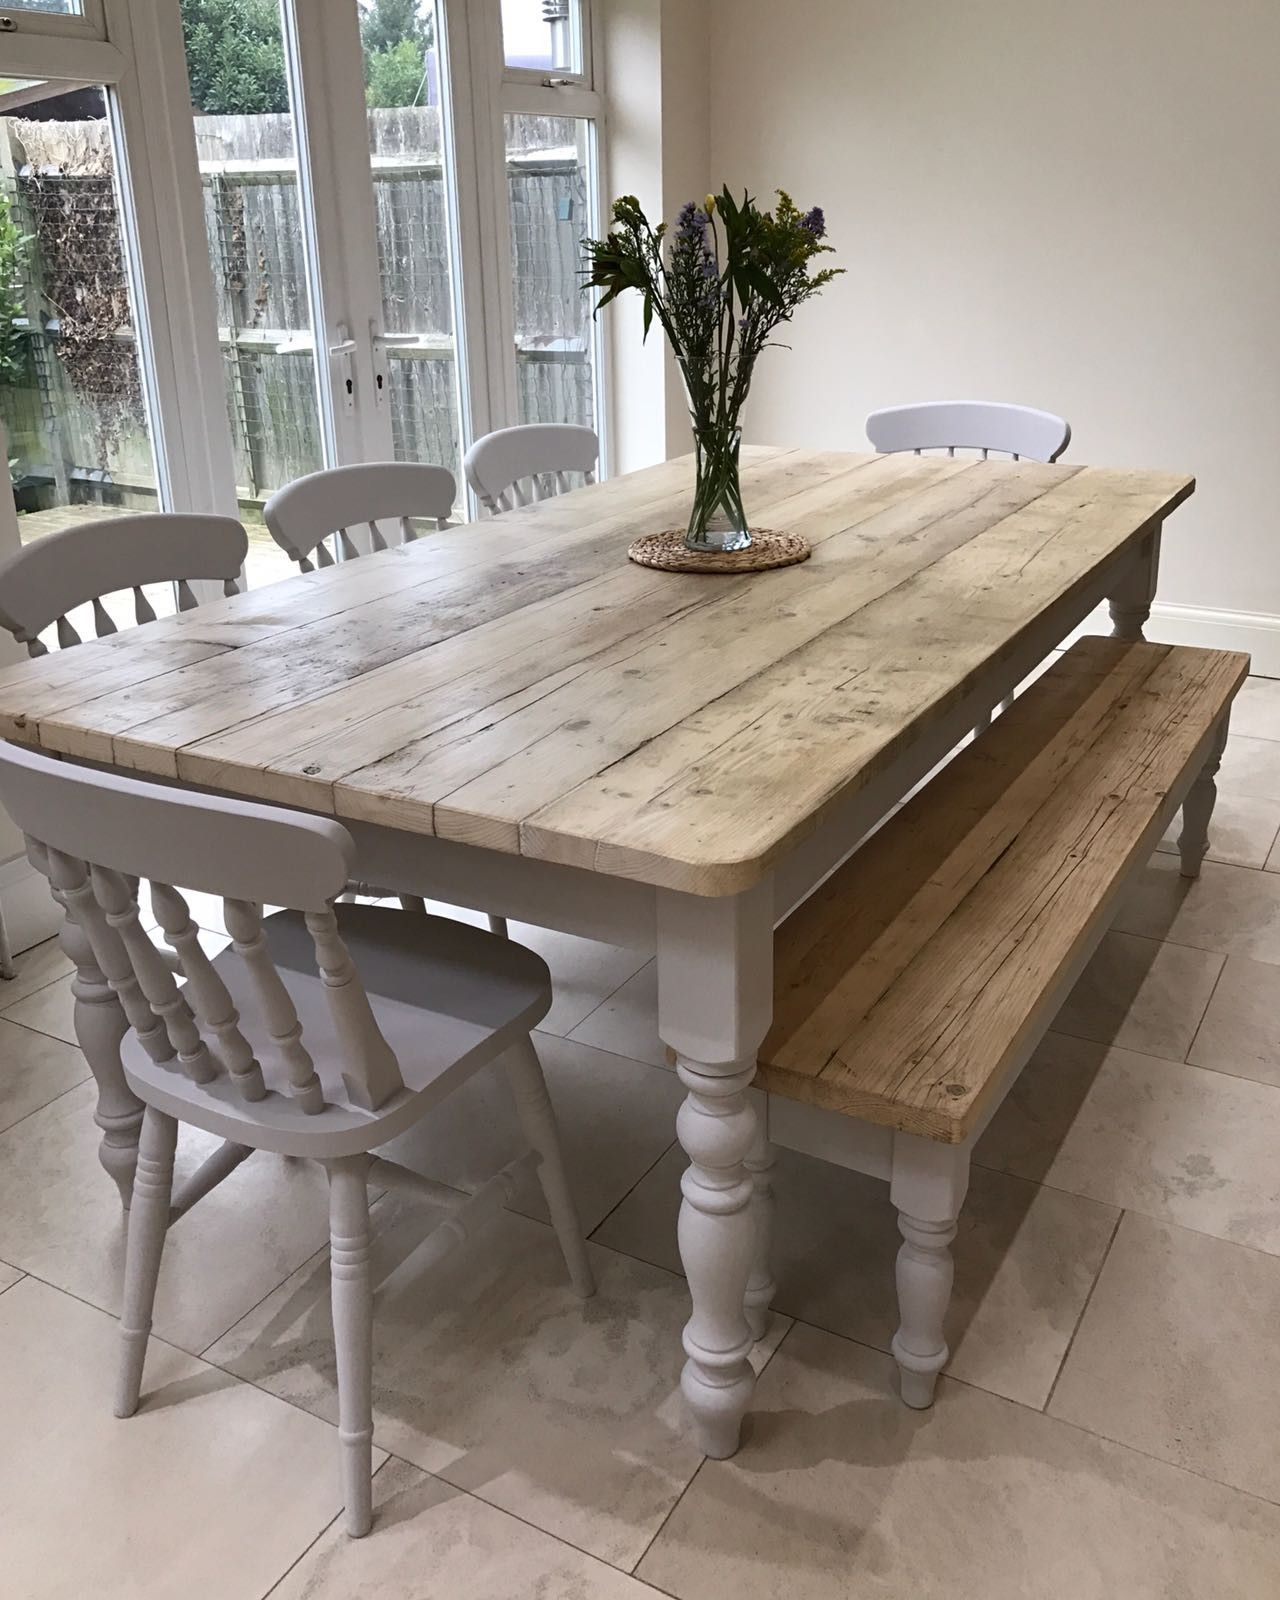 Distressed Grey Finish Wood Classic Design Dining Tables For Favorite The Florence Clear' Table Made From Reclaimed Wood (View 8 of 30)